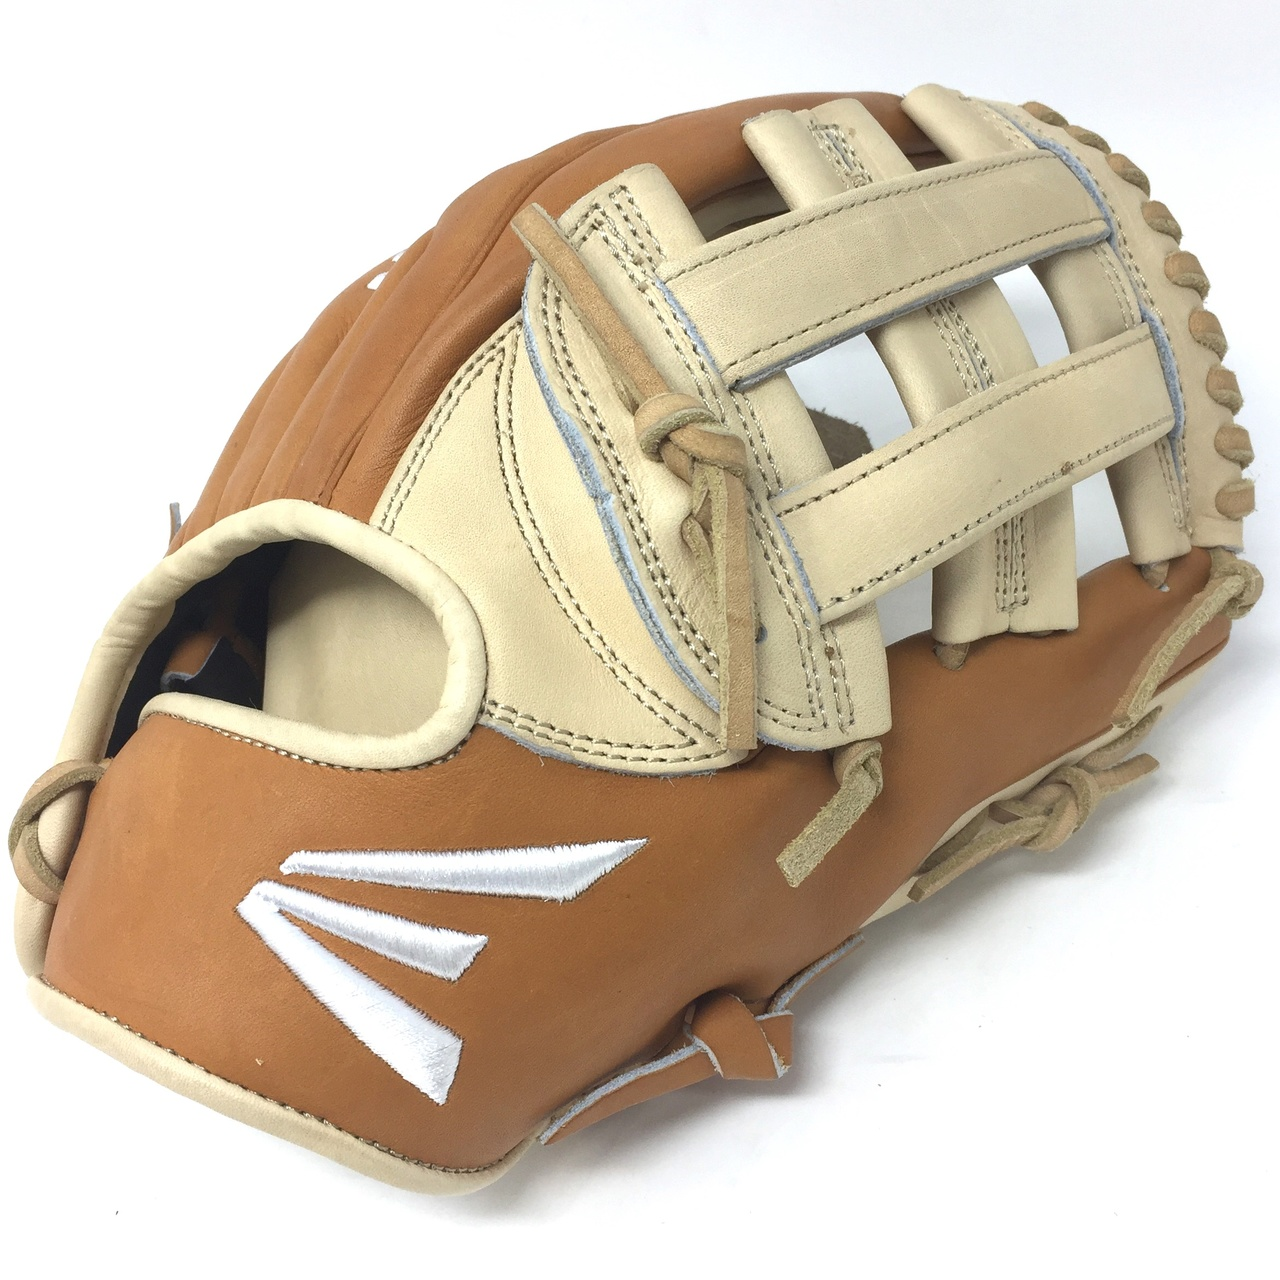 easton-small-batch-37-baseball-glove-11-75-right-hand-throw SMB37-C23-RightHandThrow Easton 628412242339 <span>Eastons Small Batch project focuses on ball glove development using only